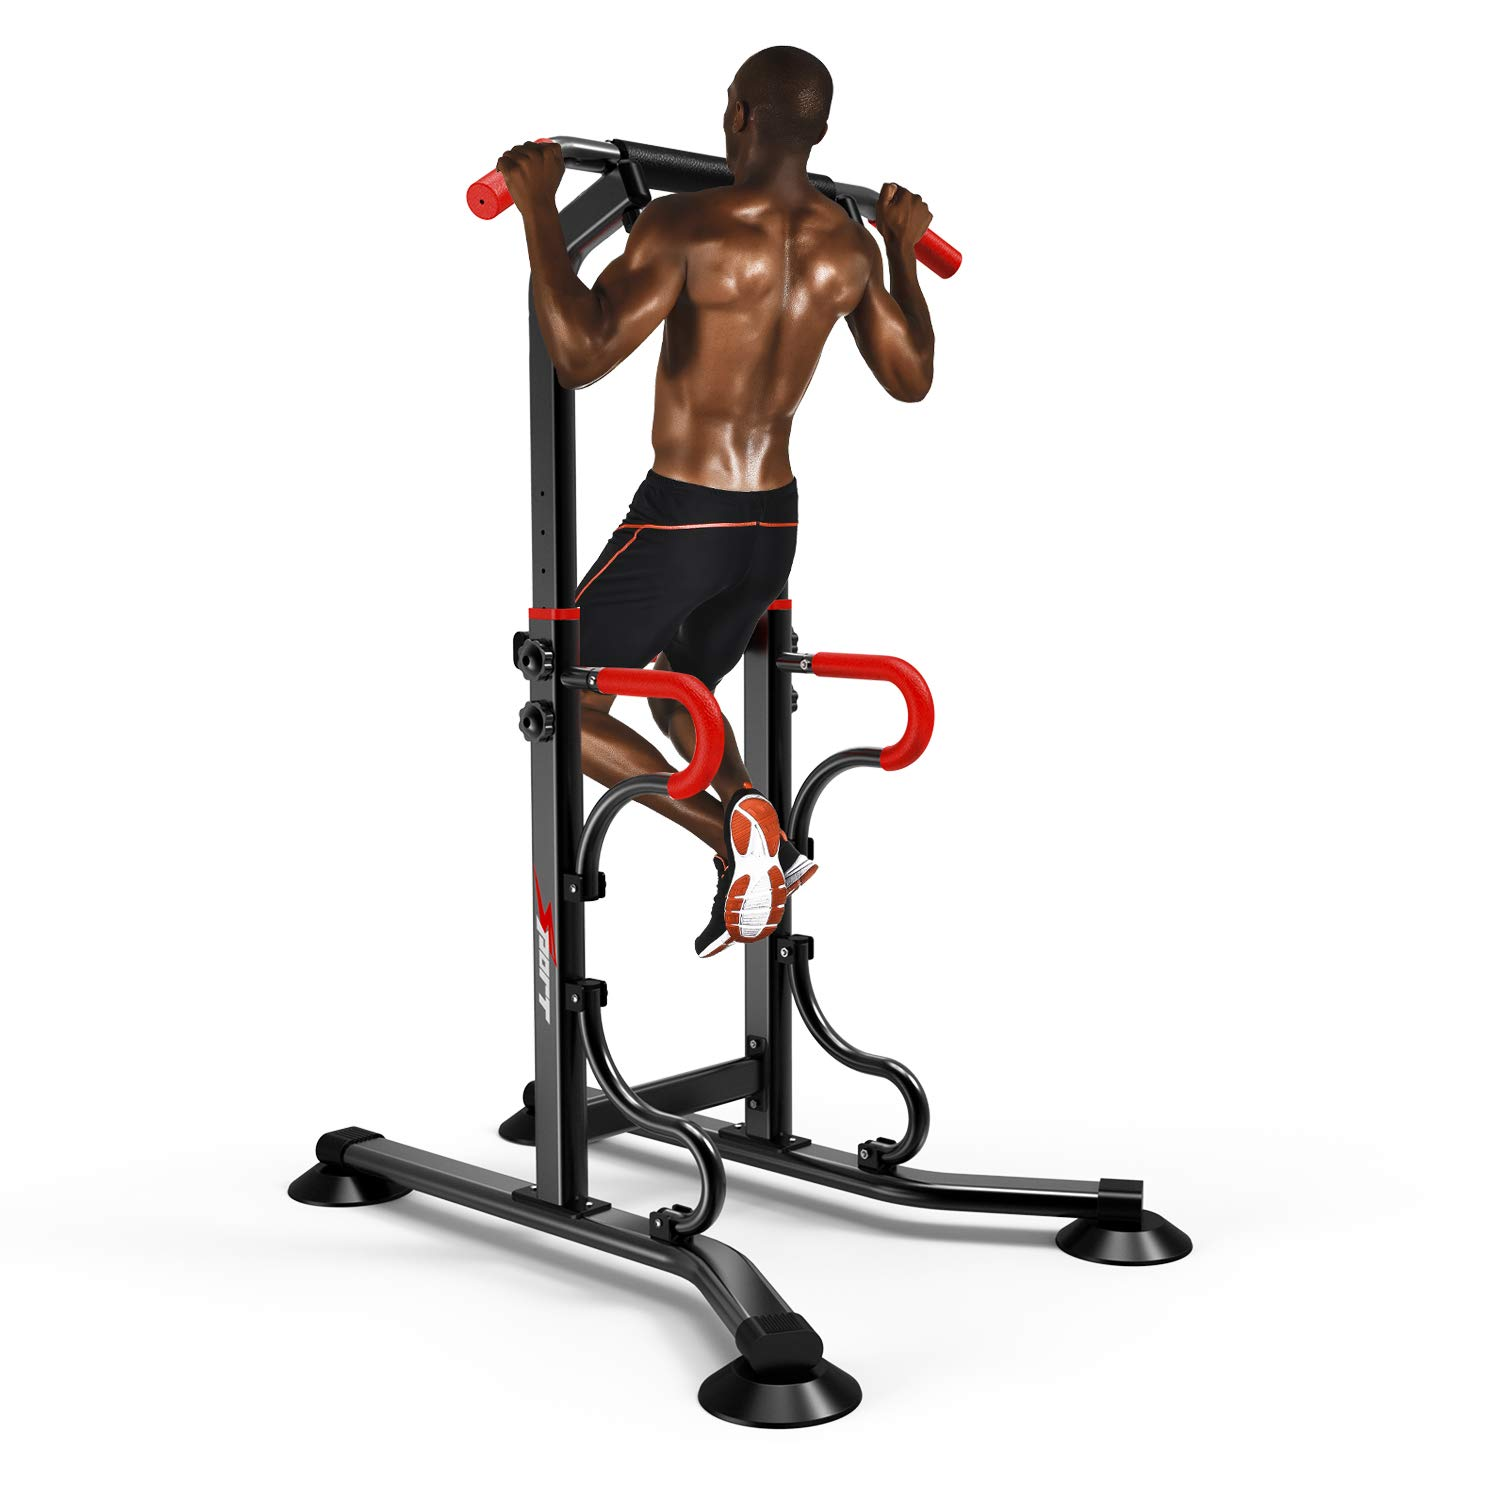 EASY BIG Multifunctional Power Tower Adjustable Heights Pull Up Bar Workout Dip Station for Adults and Kids Home Gym Strength Training Fitness Equipment Newer Version